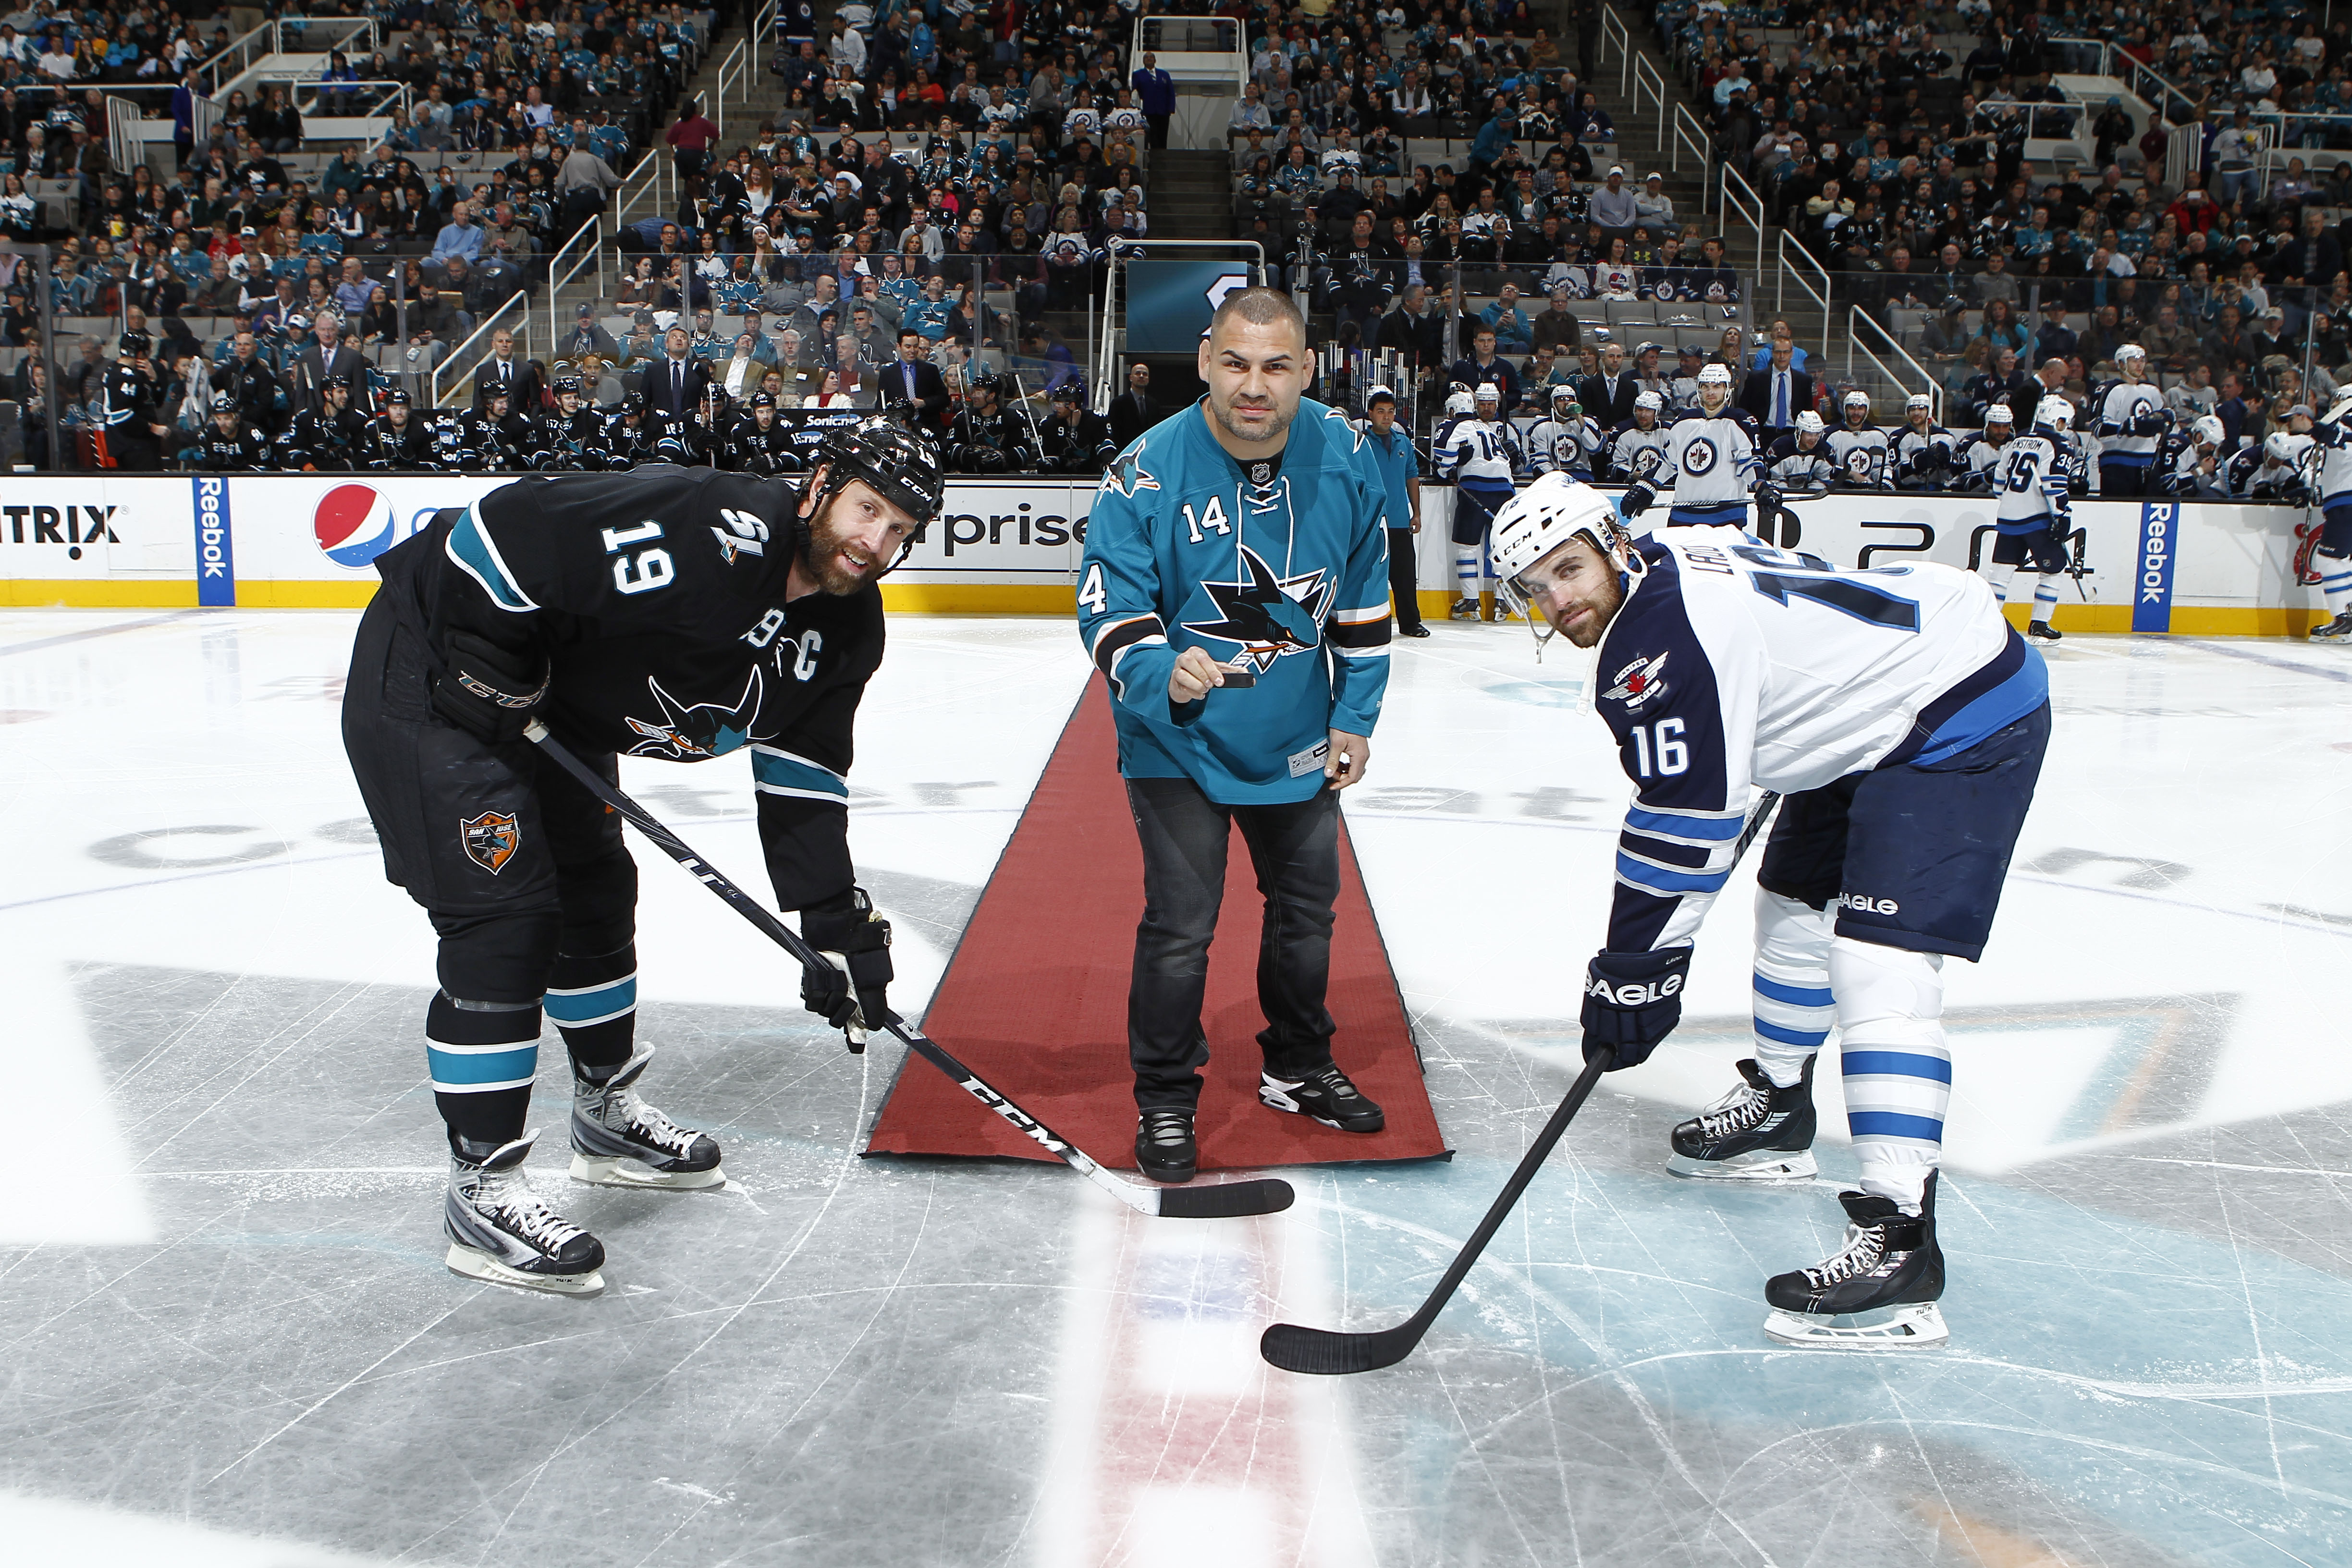 Heavyweight champion Cain Velasquez drops the puck at the San Jose Sharks game against the Winnipeg Jets on Thursday night.